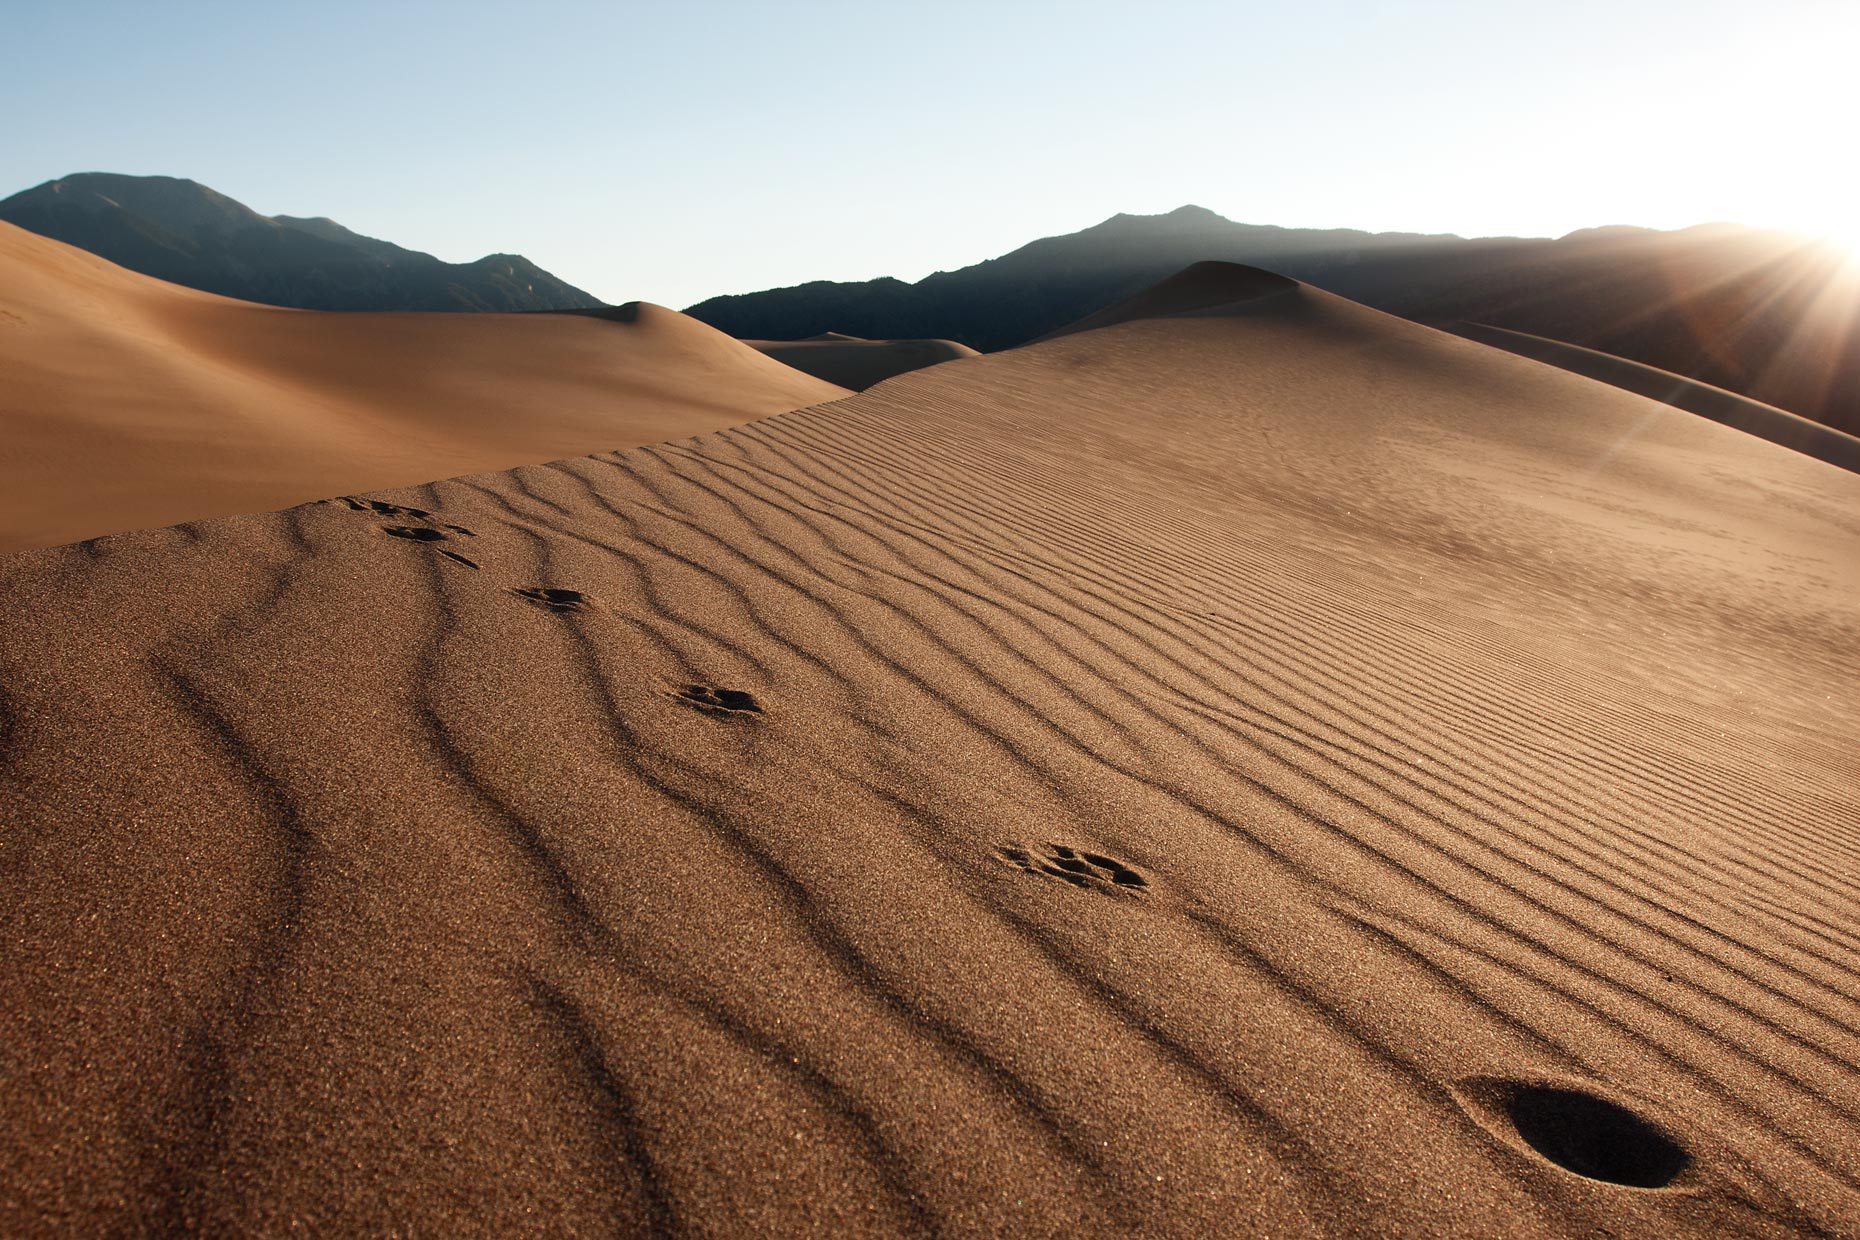 Places-great-sand-dunes-colorado-coyote-tracks